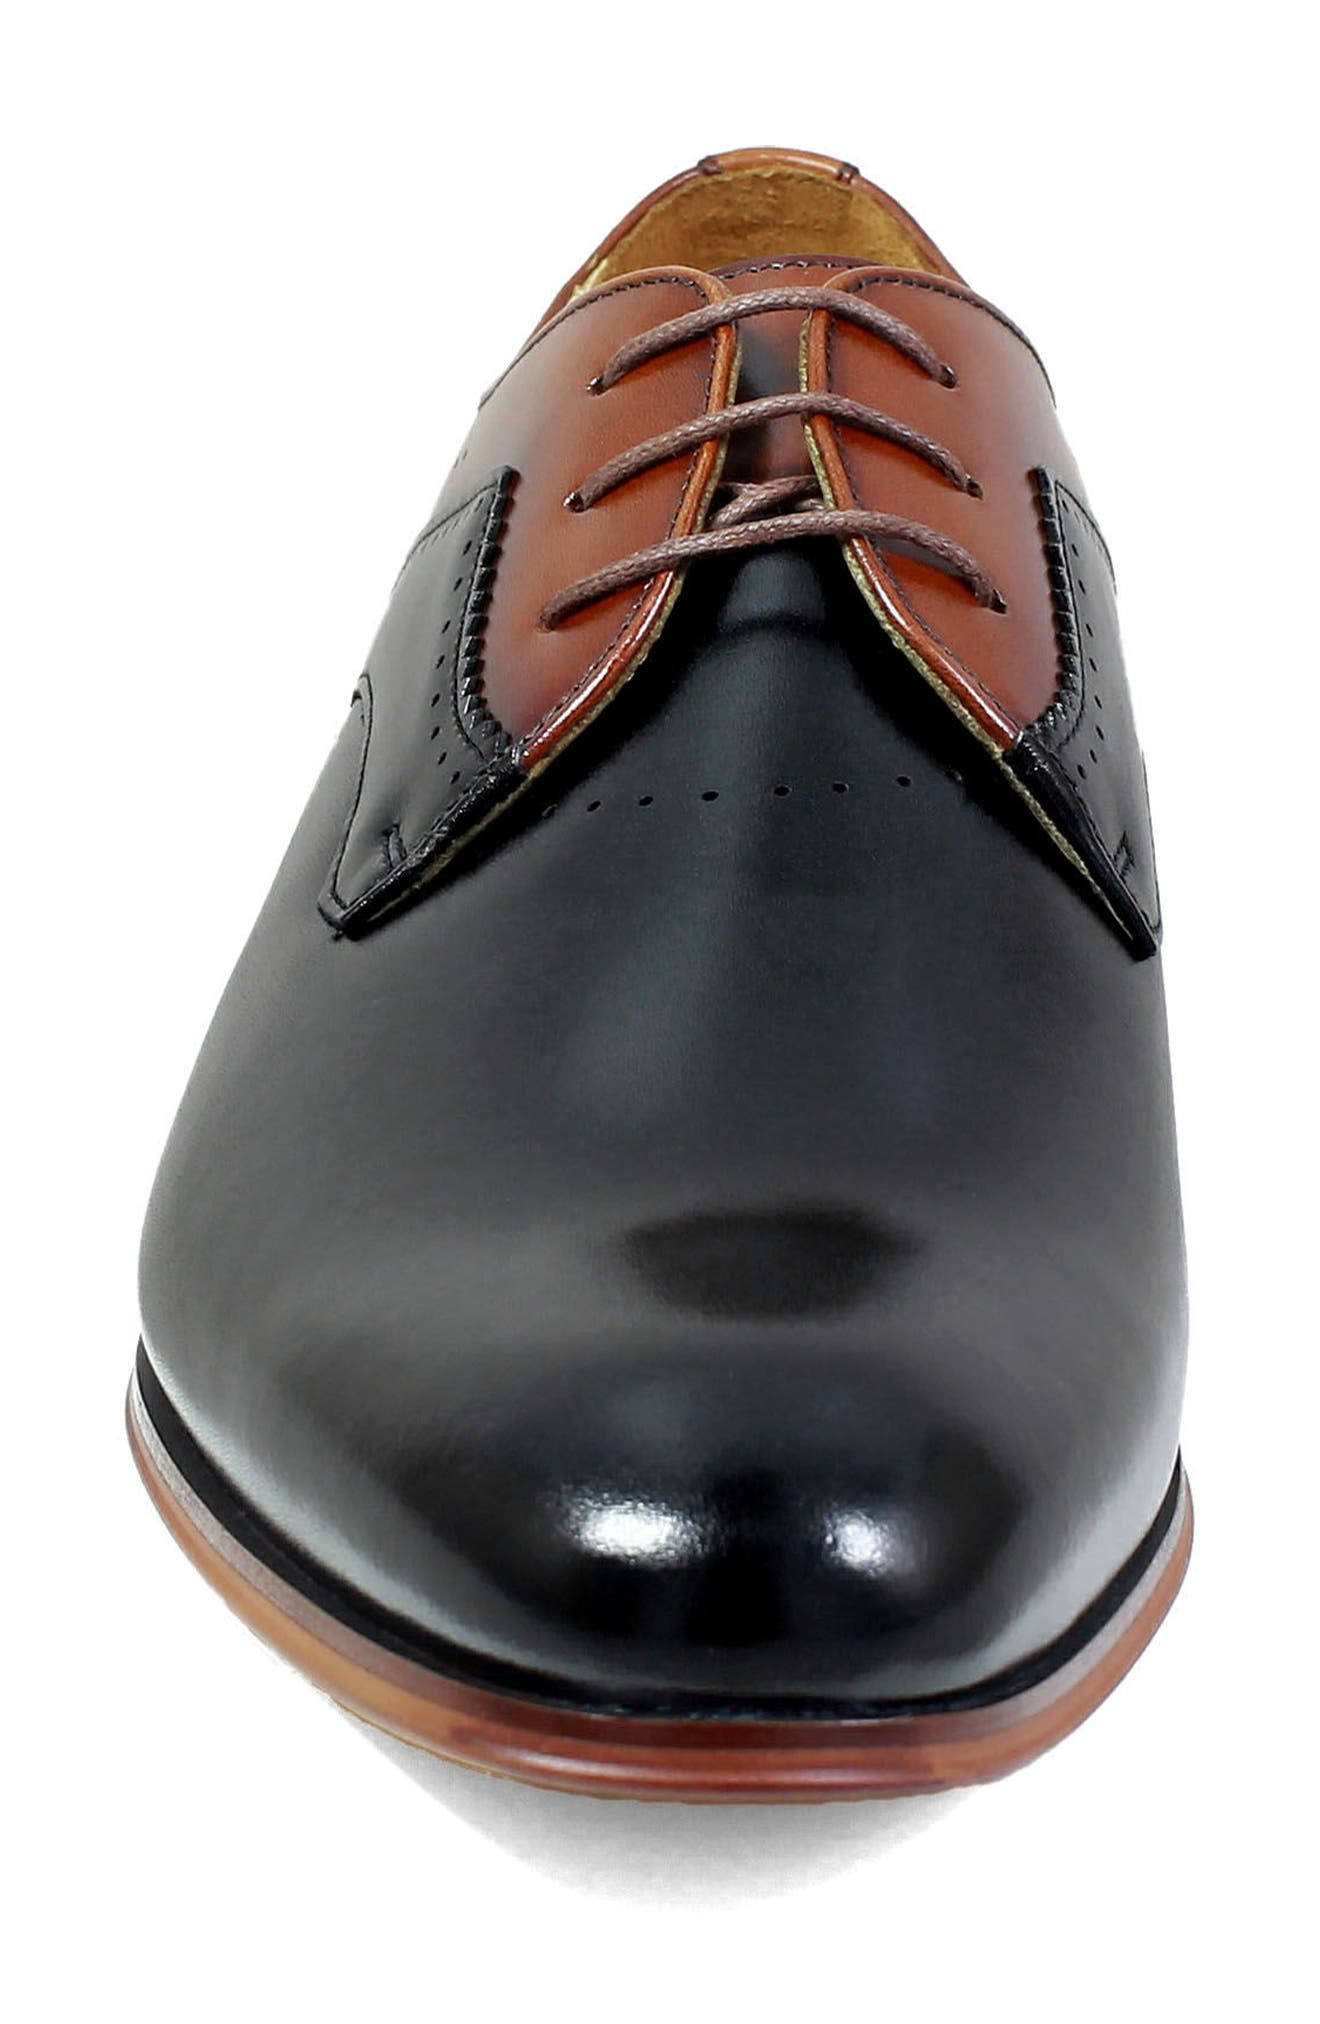 Savion Plain Toe Derby,                             Alternate thumbnail 4, color,                             BLACK/ COGNAC LEATHER